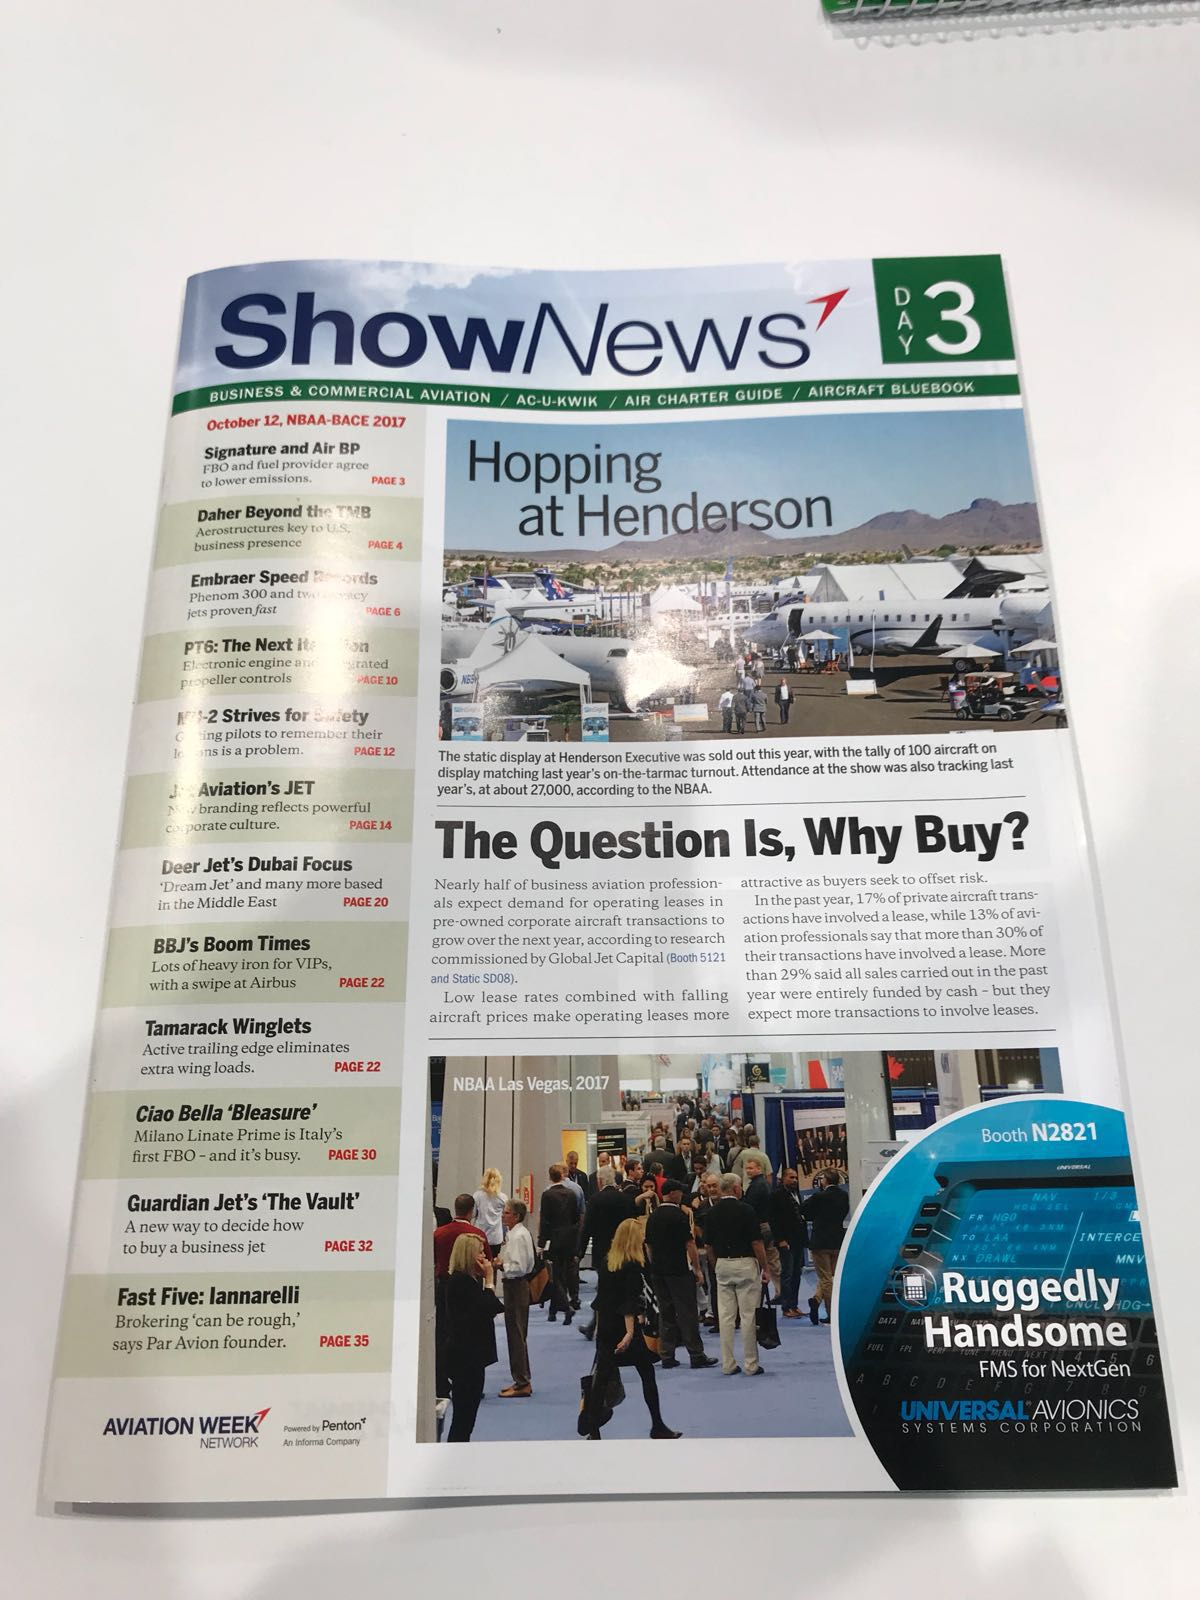 Aviation Week's Show News - Airnav was featured for its Space-Based ADS-B coverage.